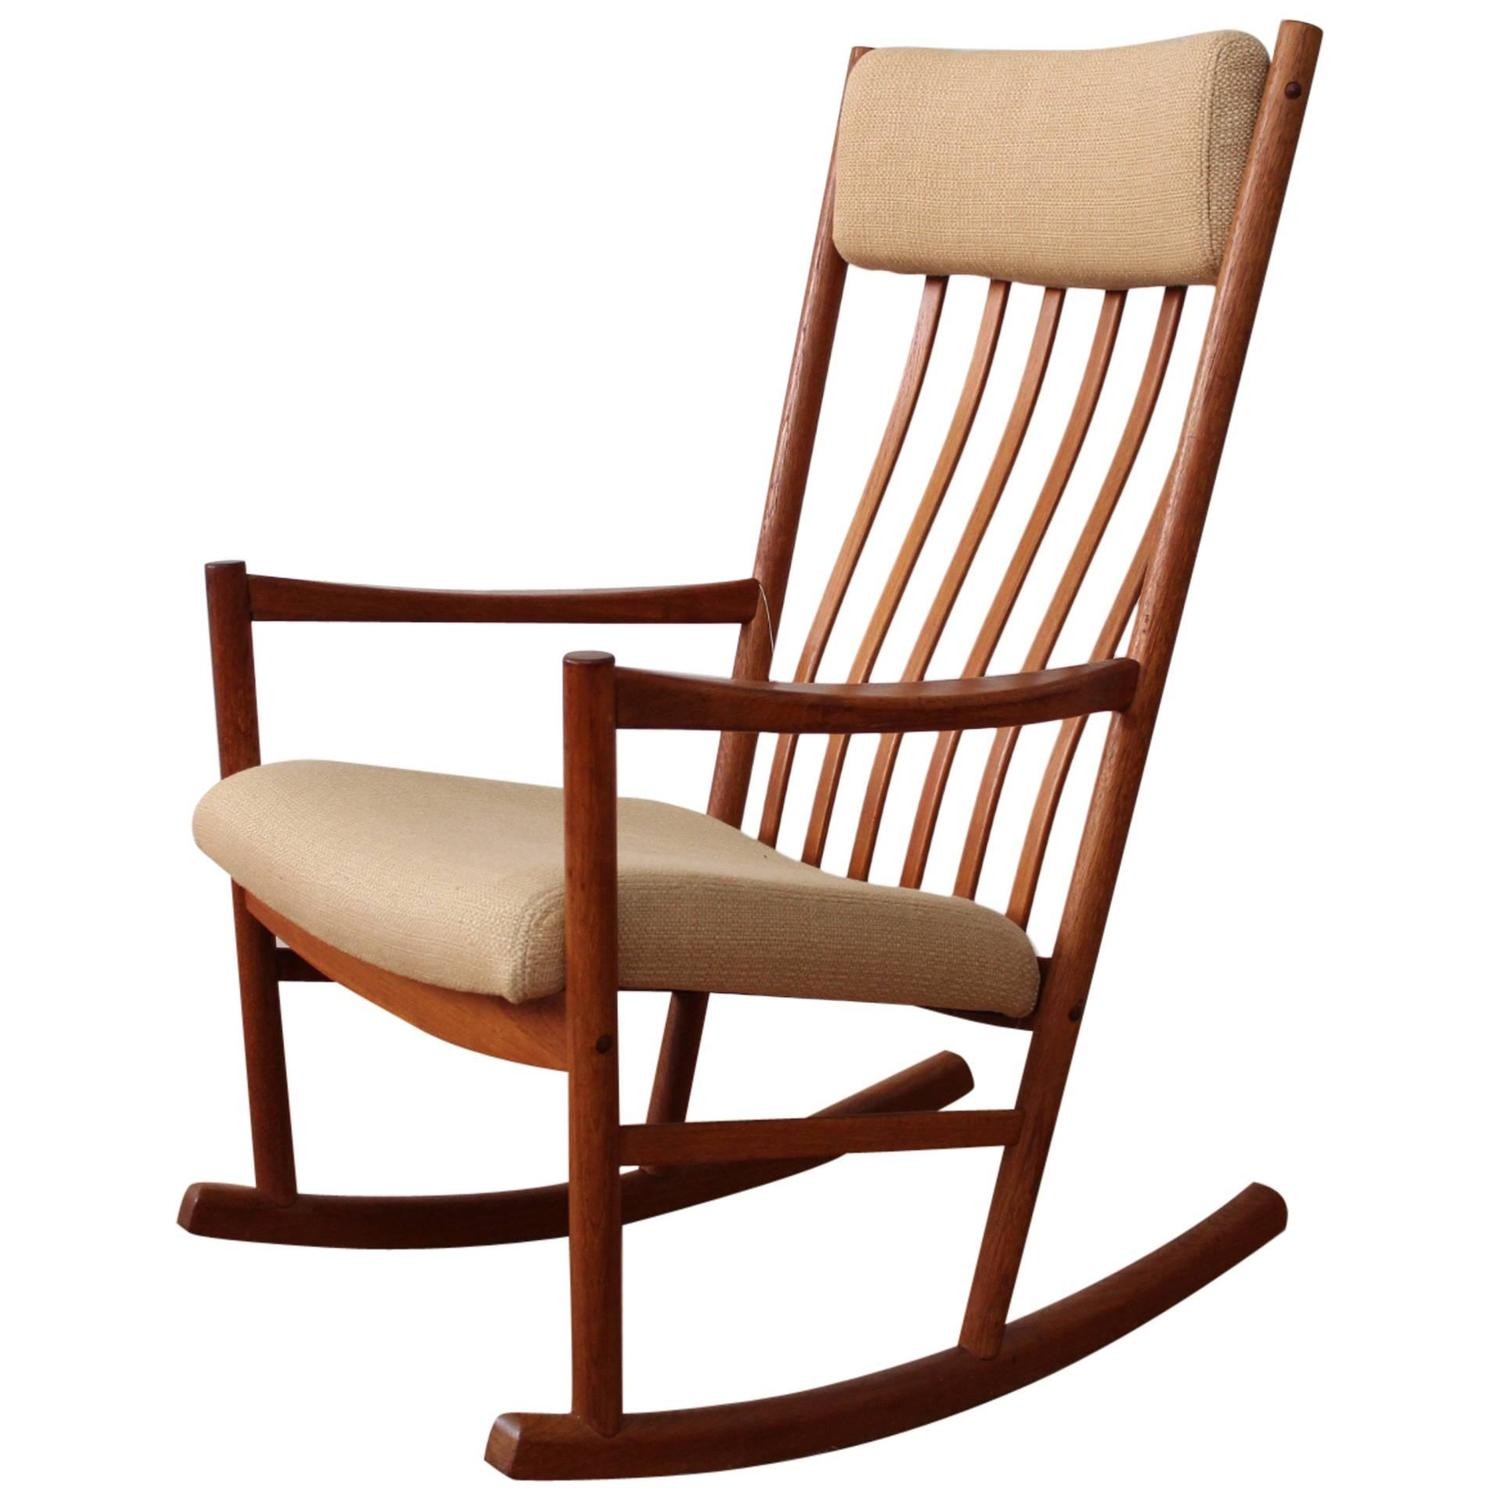 Rocking Chairs For Sale Antique Leisure Wooden Rocking  : Teak Rocker from oneseven.us size 1500 x 1500 jpeg 112kB